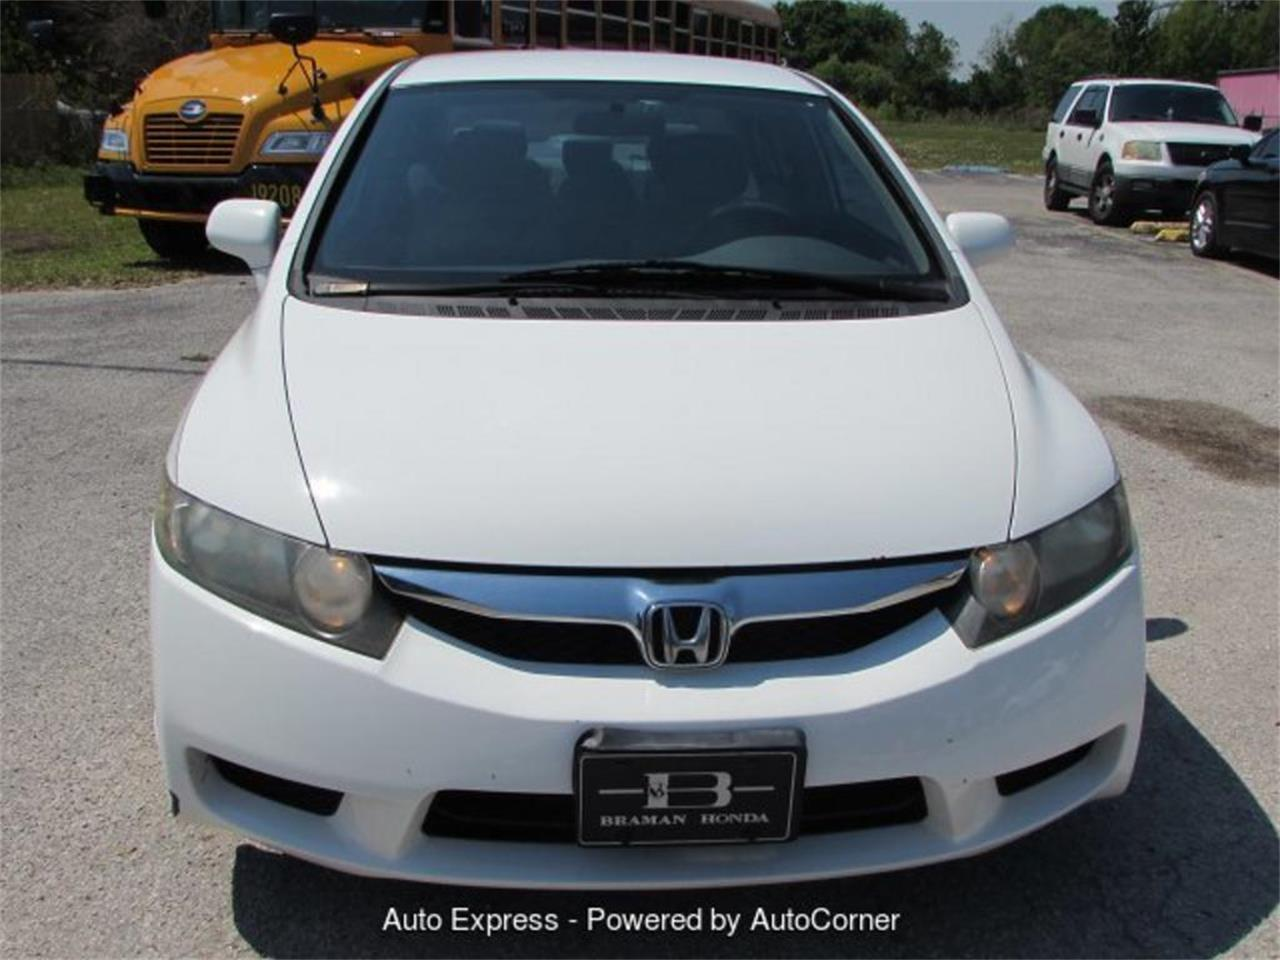 Large Picture of 2010 Honda Civic located in Florida - $7,999.00 - Q2AK